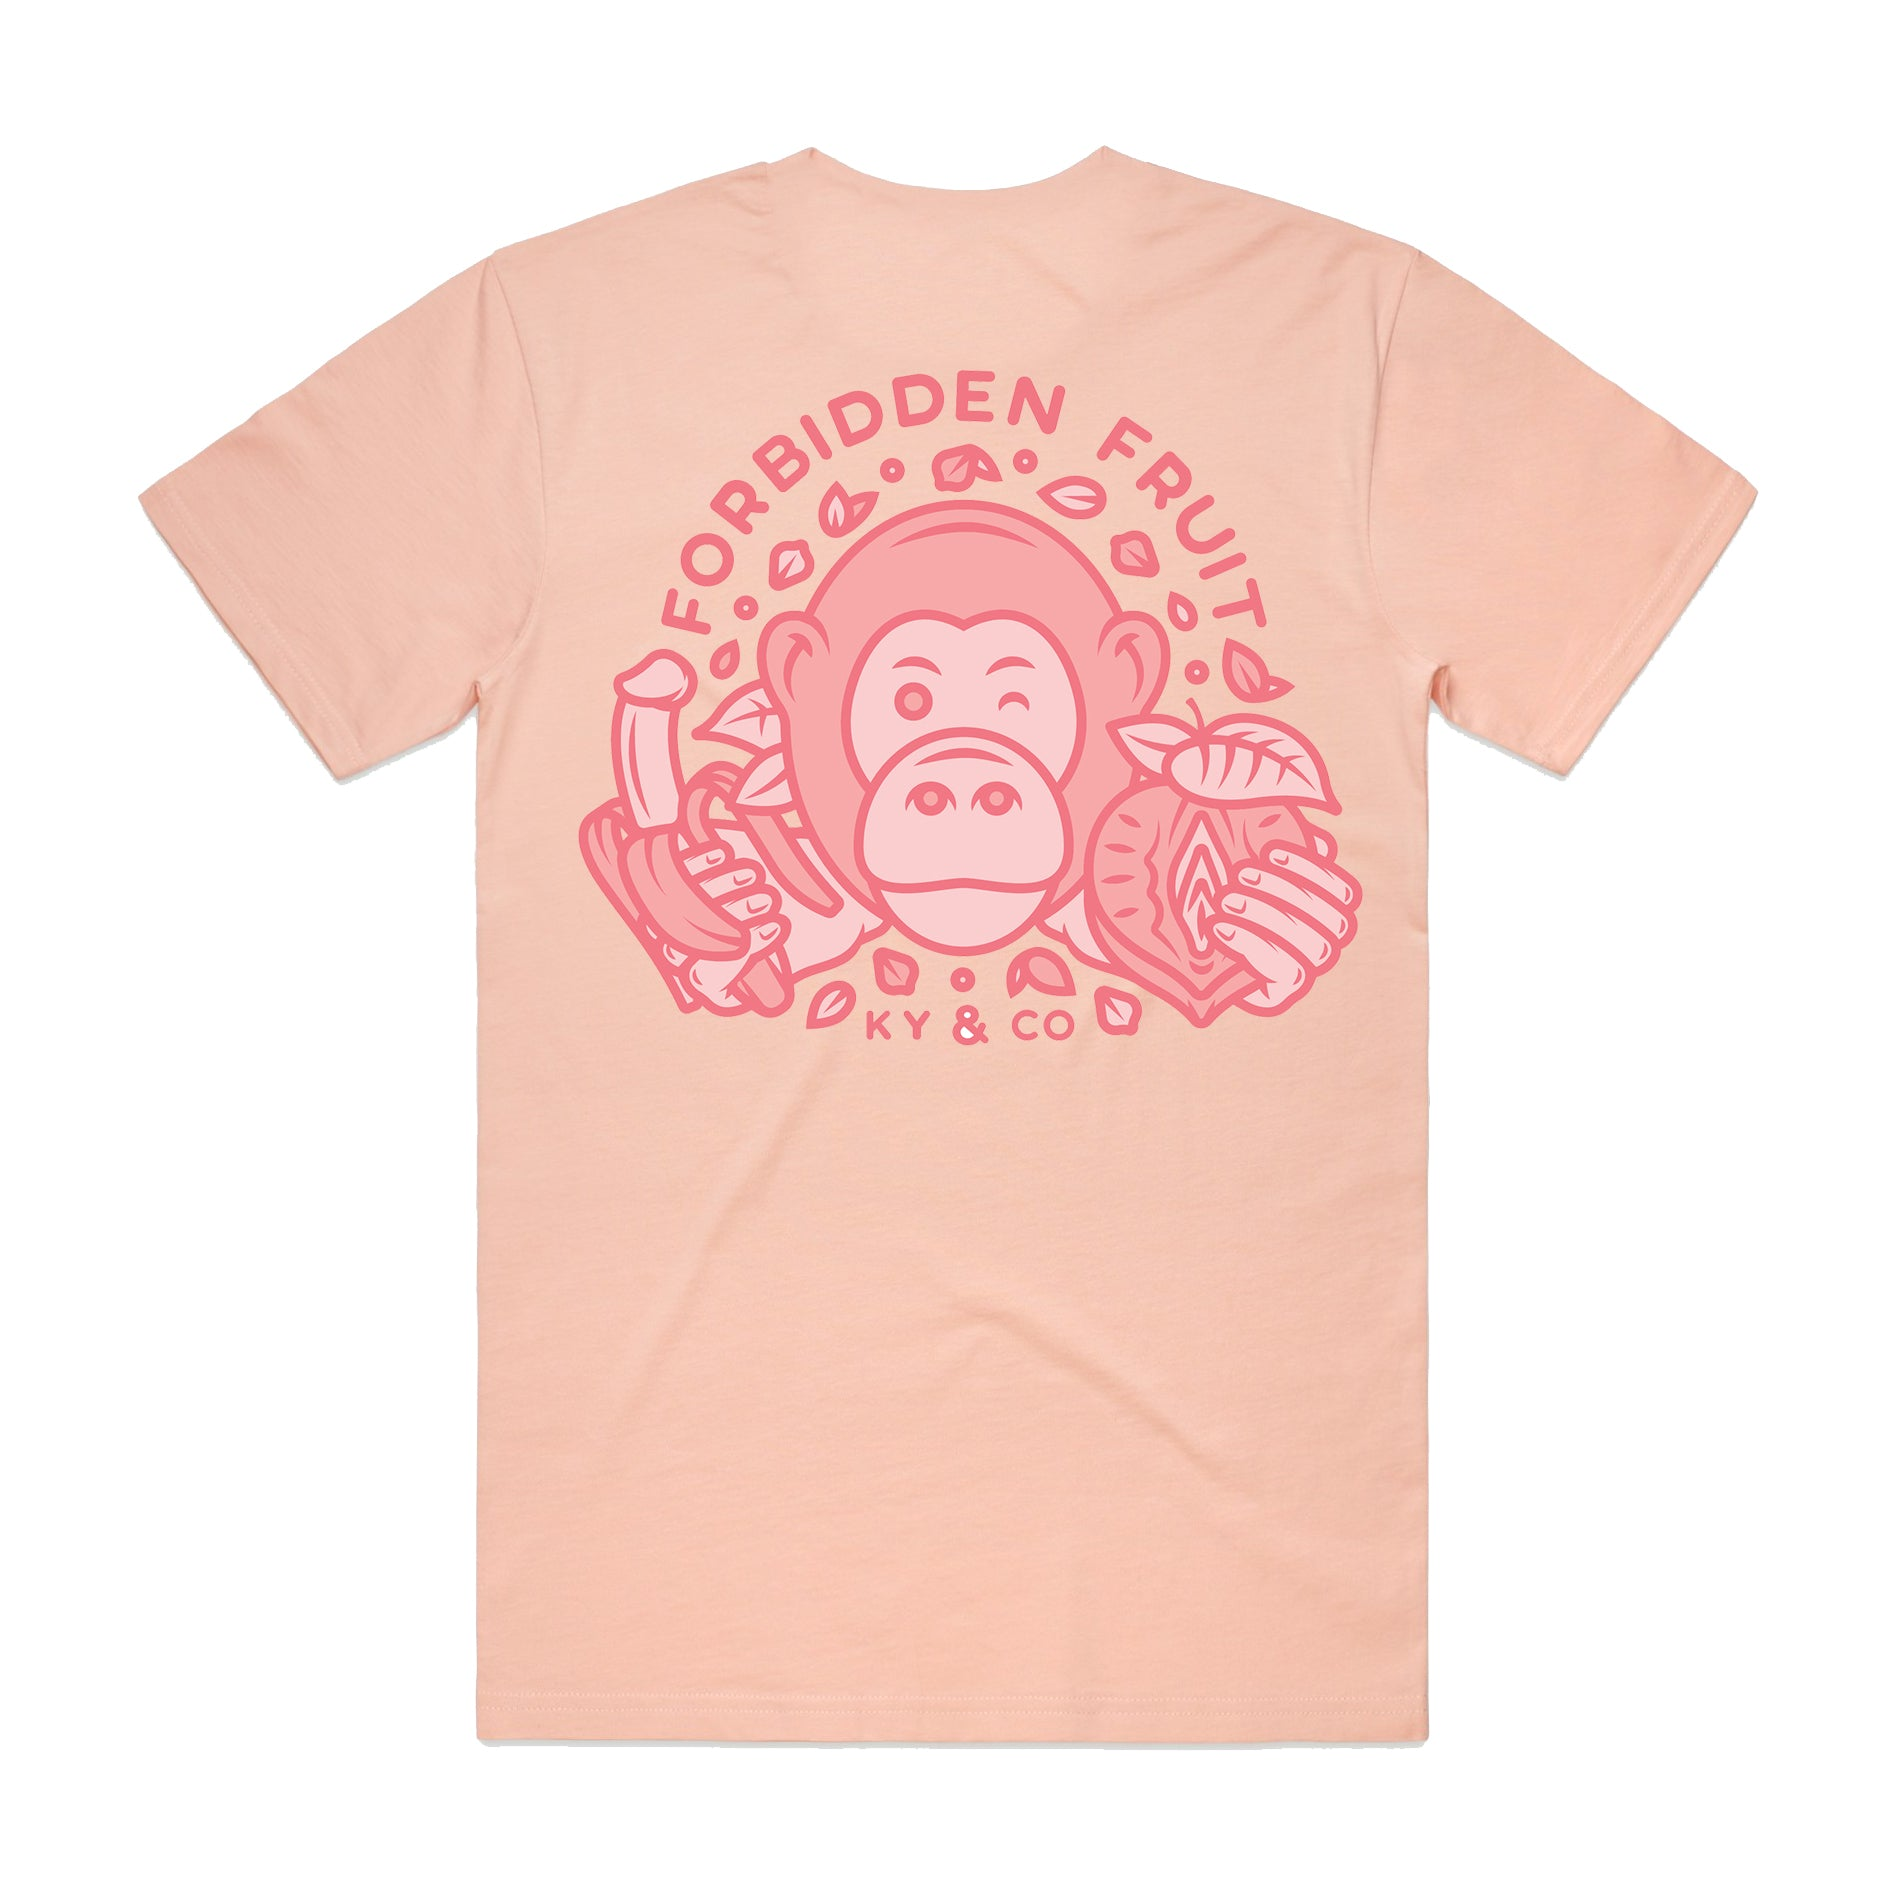 Taste the Forbidden Fruit X Chris Costa Tee